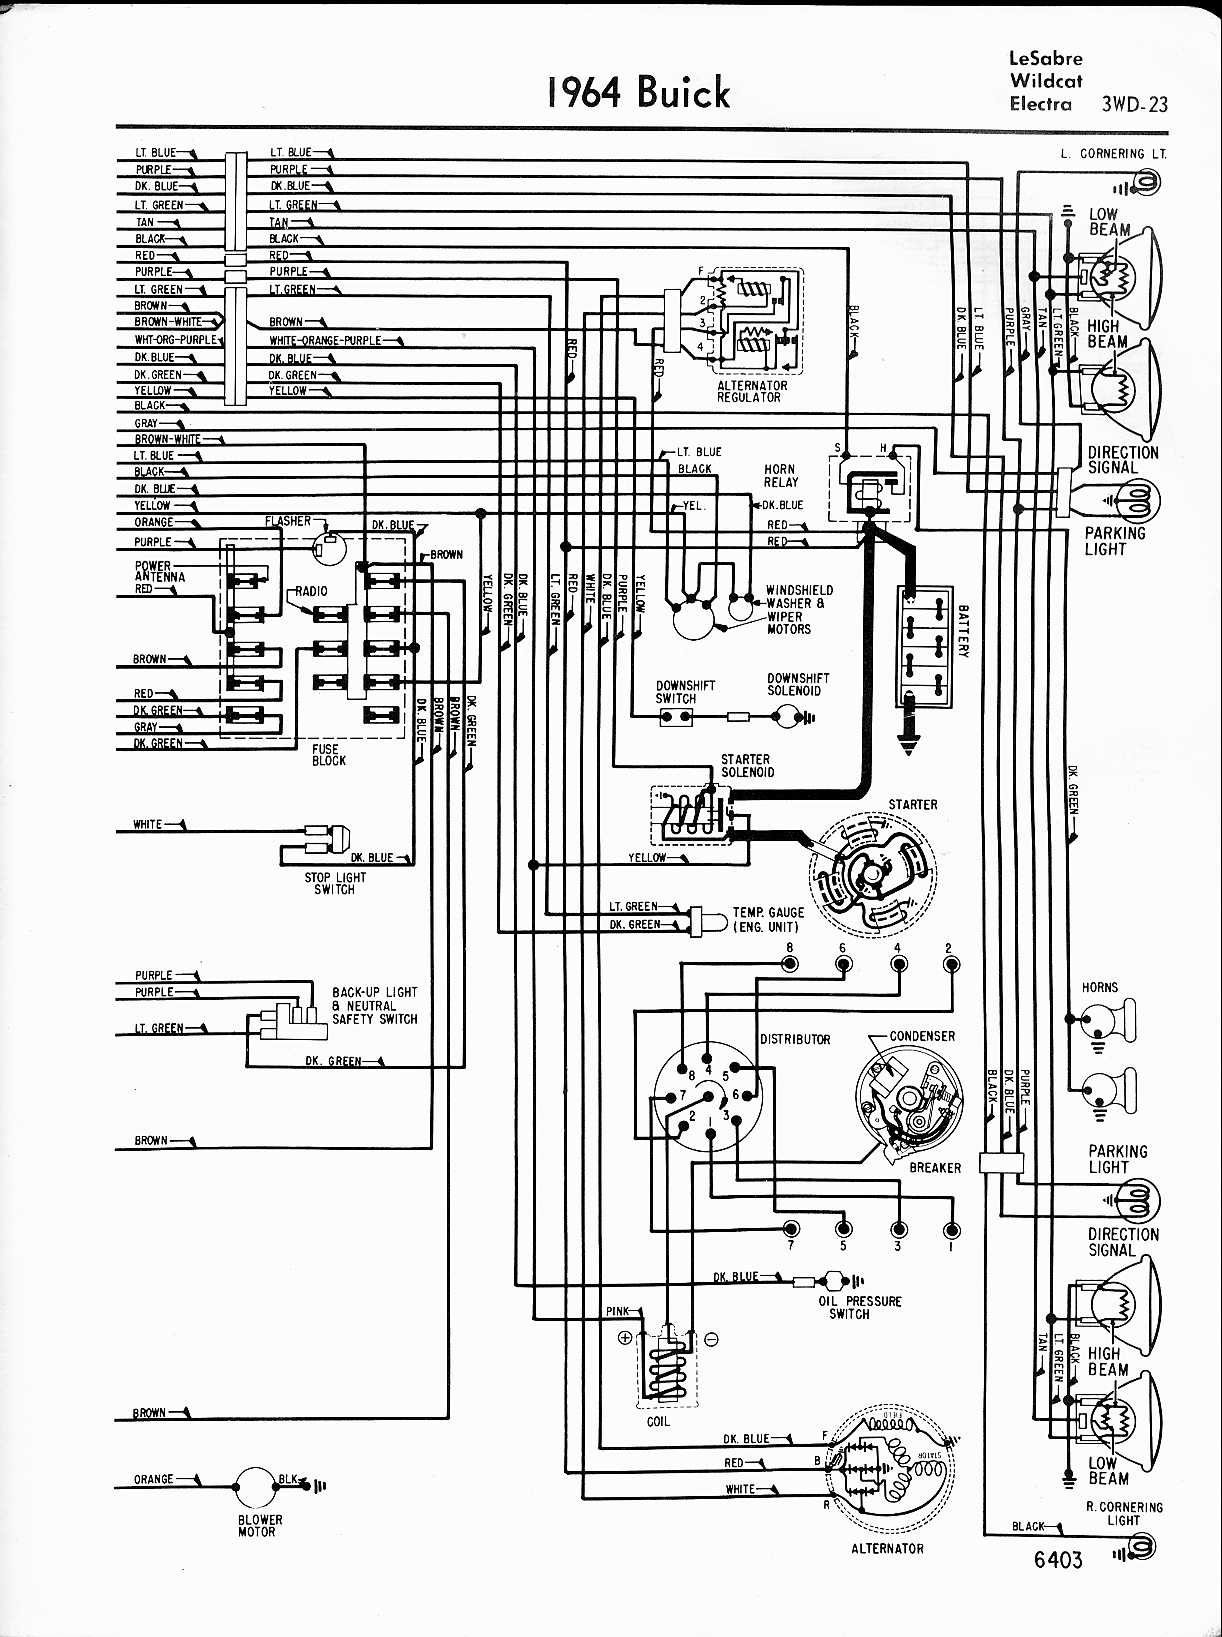 1946 Ford Coupe Wiring Harness | Online Wiring Diagram  Ford Wiring Harness on 1930 model a wiring harness, 1949 dodge wiring harness, 1965 corvette wiring harness, 1955 chevy wiring harness, 1947 ford wiring harness, 1940 ford wiring harness, 1957 ford wiring harness, 1946 ford truck wiring diagram, 1948 cadillac wiring harness, 1956 ford wiring harness, 1941 buick wiring harness, 1955 ford wiring harness, 1970 chevelle wiring harness, 1941 ford wiring harness, 1969 nova wiring harness, 1949 lincoln wiring harness, chevy truck wiring harness, 1950 ford wiring harness, 1951 ford wiring harness, 1954 ford wiring harness,